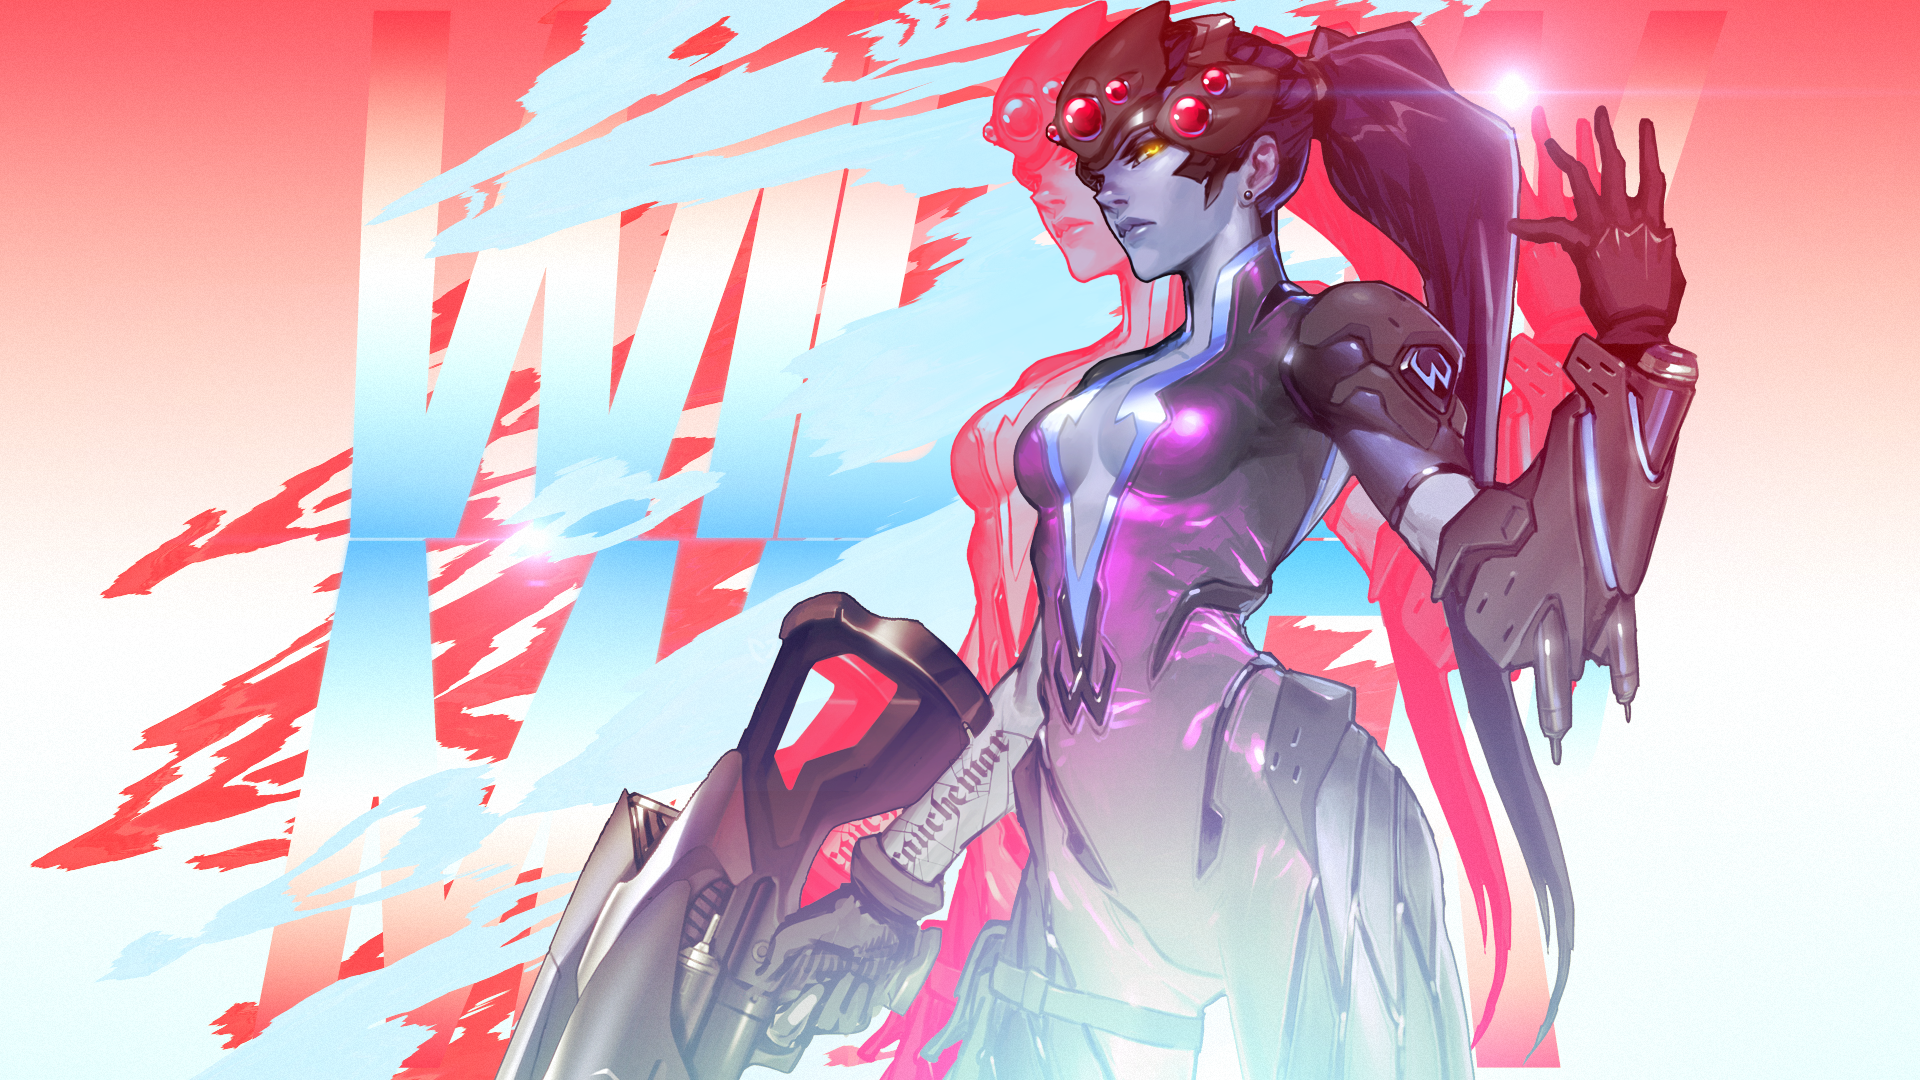 widowmaker overwatch wallpaper 1920x1080 - photo #3